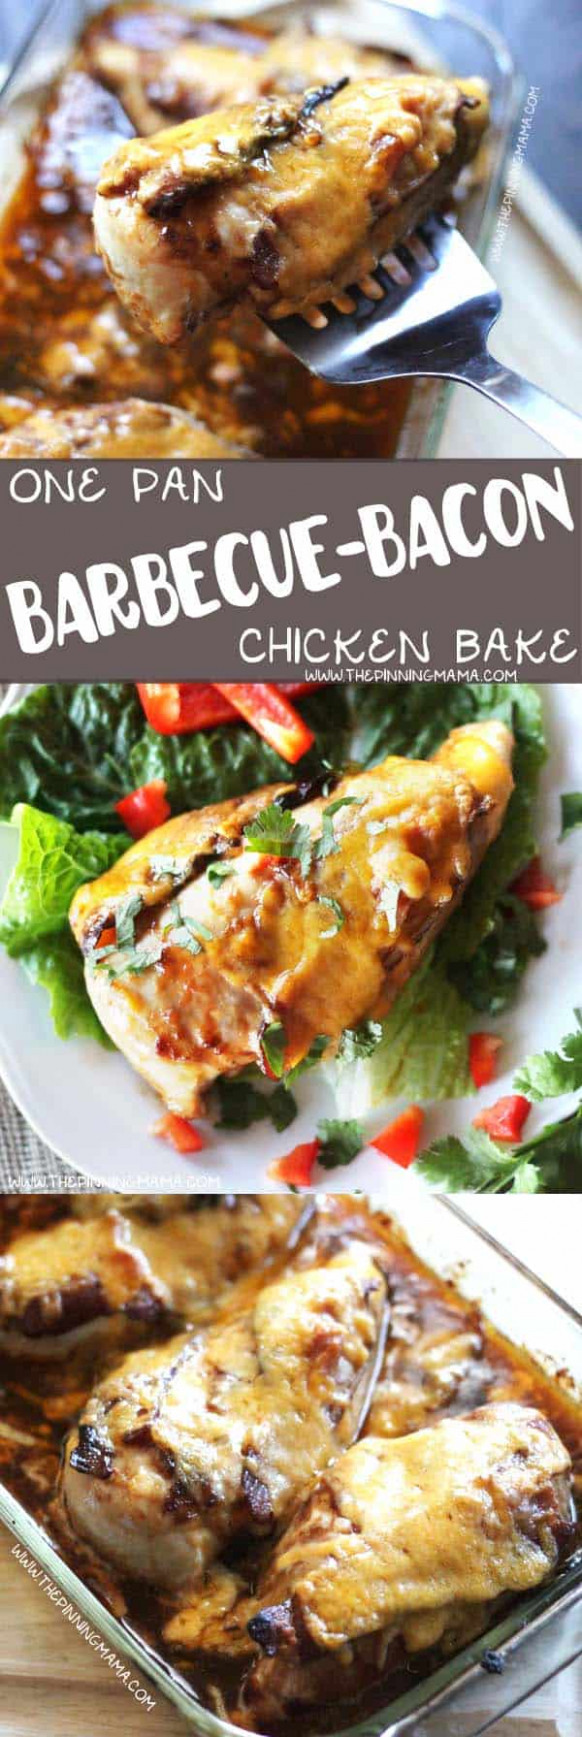 Barbecue Bacon Chicken Bake - One Dish Easy Dinner Recipe! - dinner recipes with bacon